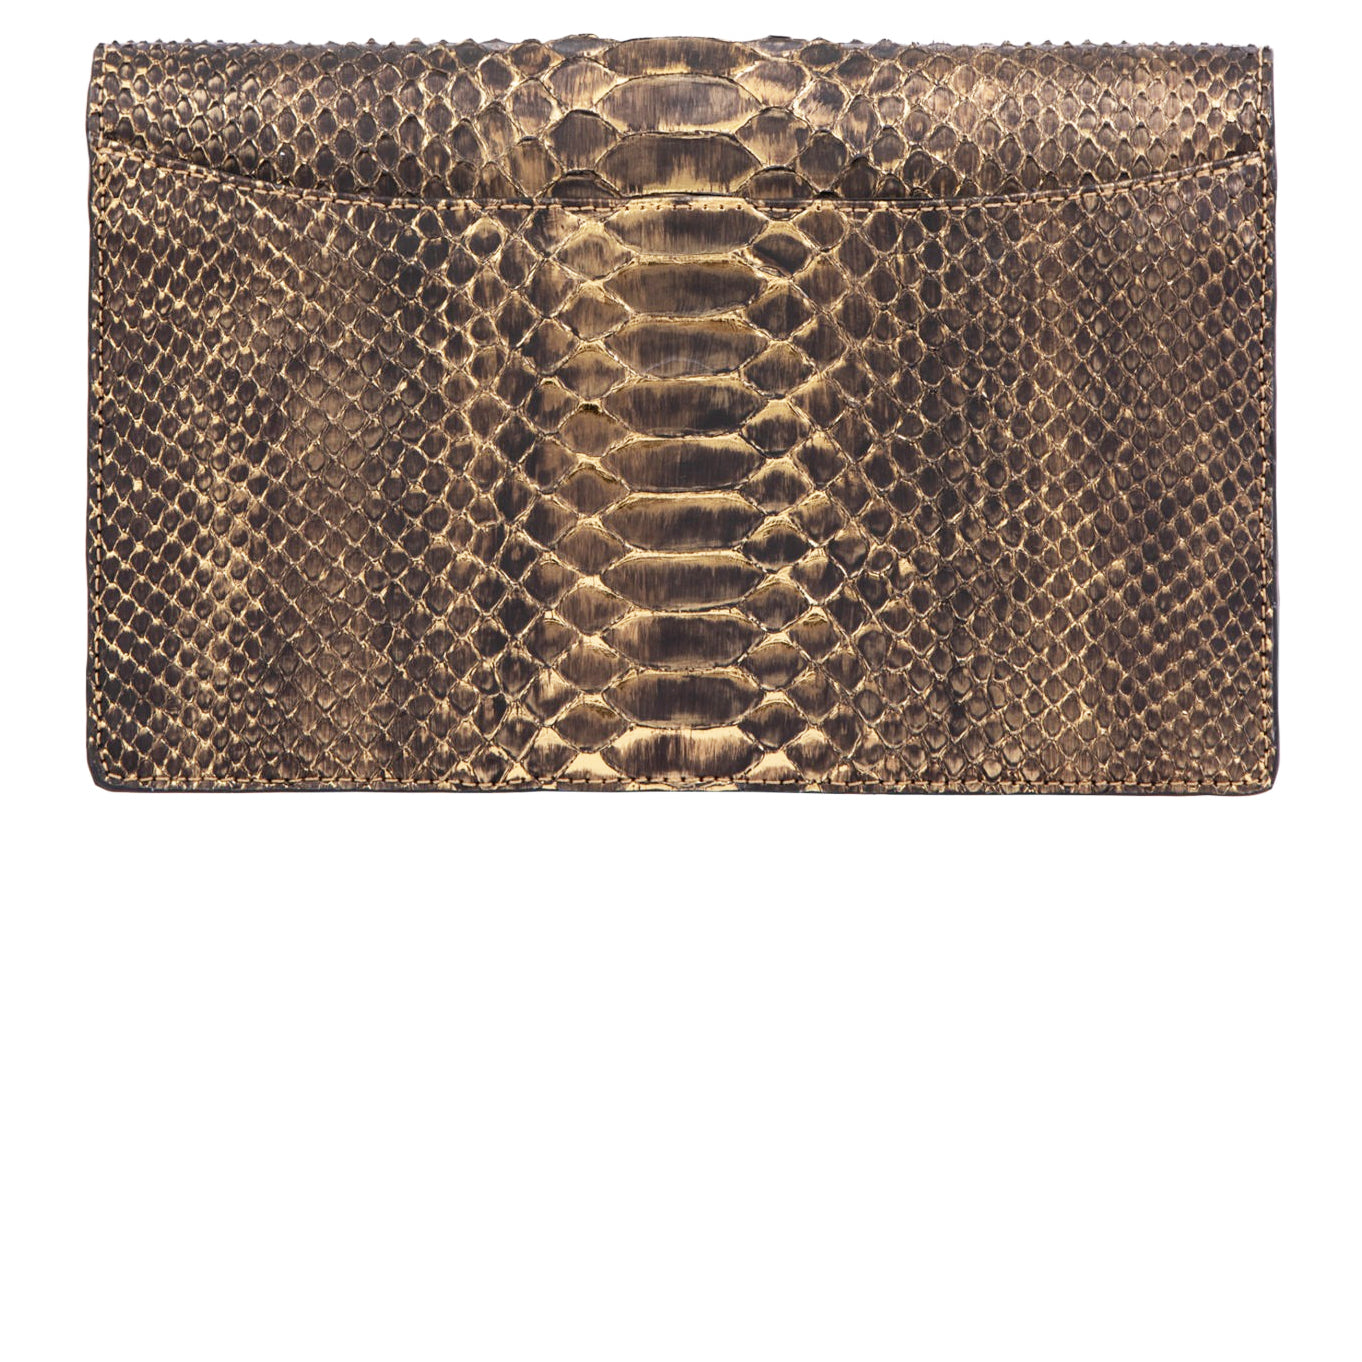 CAPE COBRA- IVY BAG IN BRONZE METALLIC PYTHON